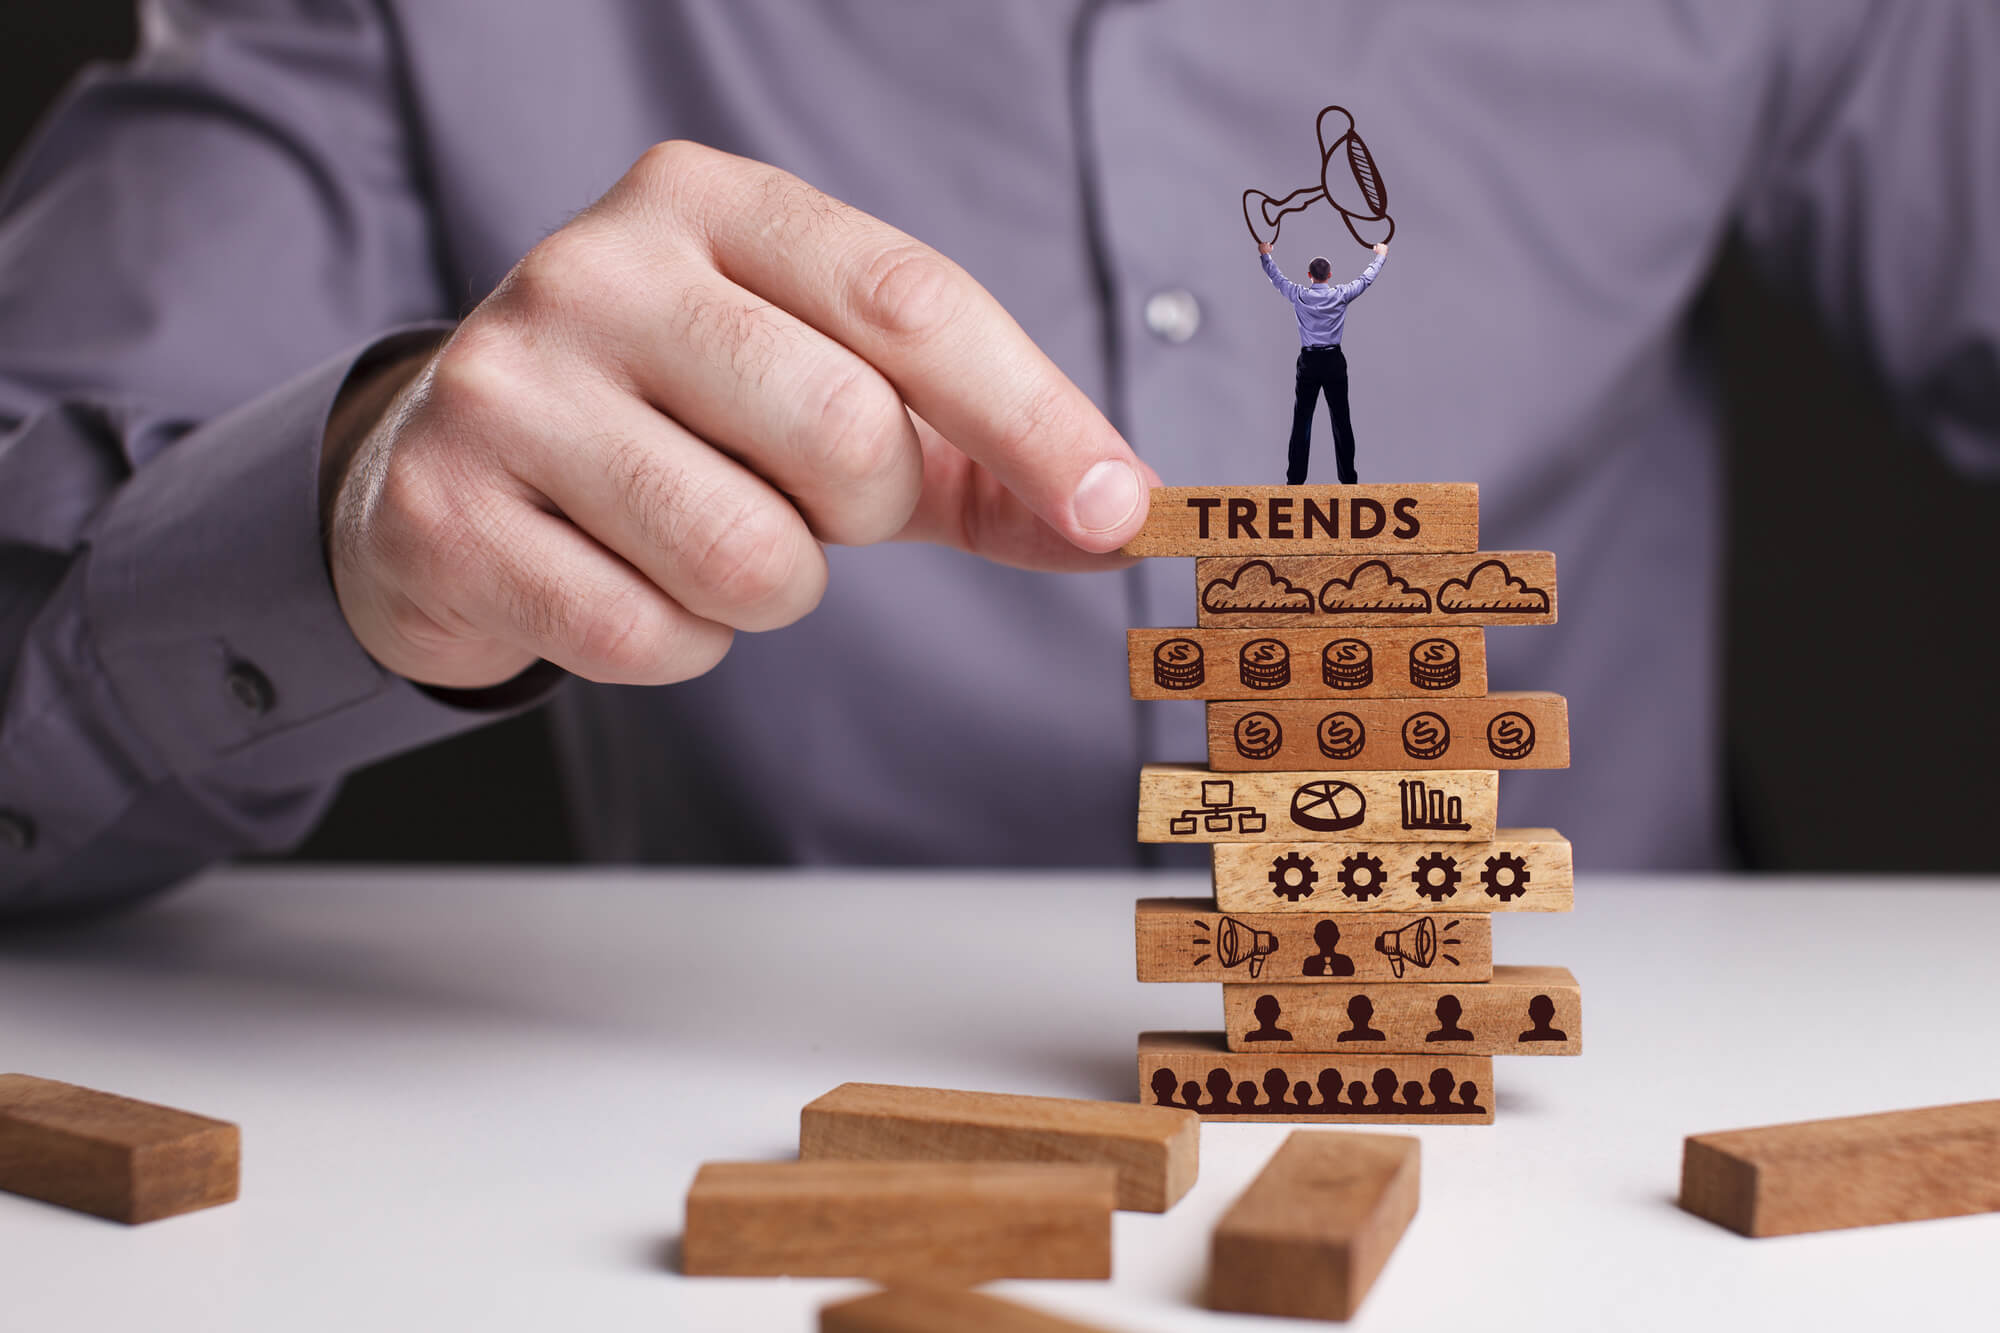 Top 9 Business Trends That Will Bring Success in 2018